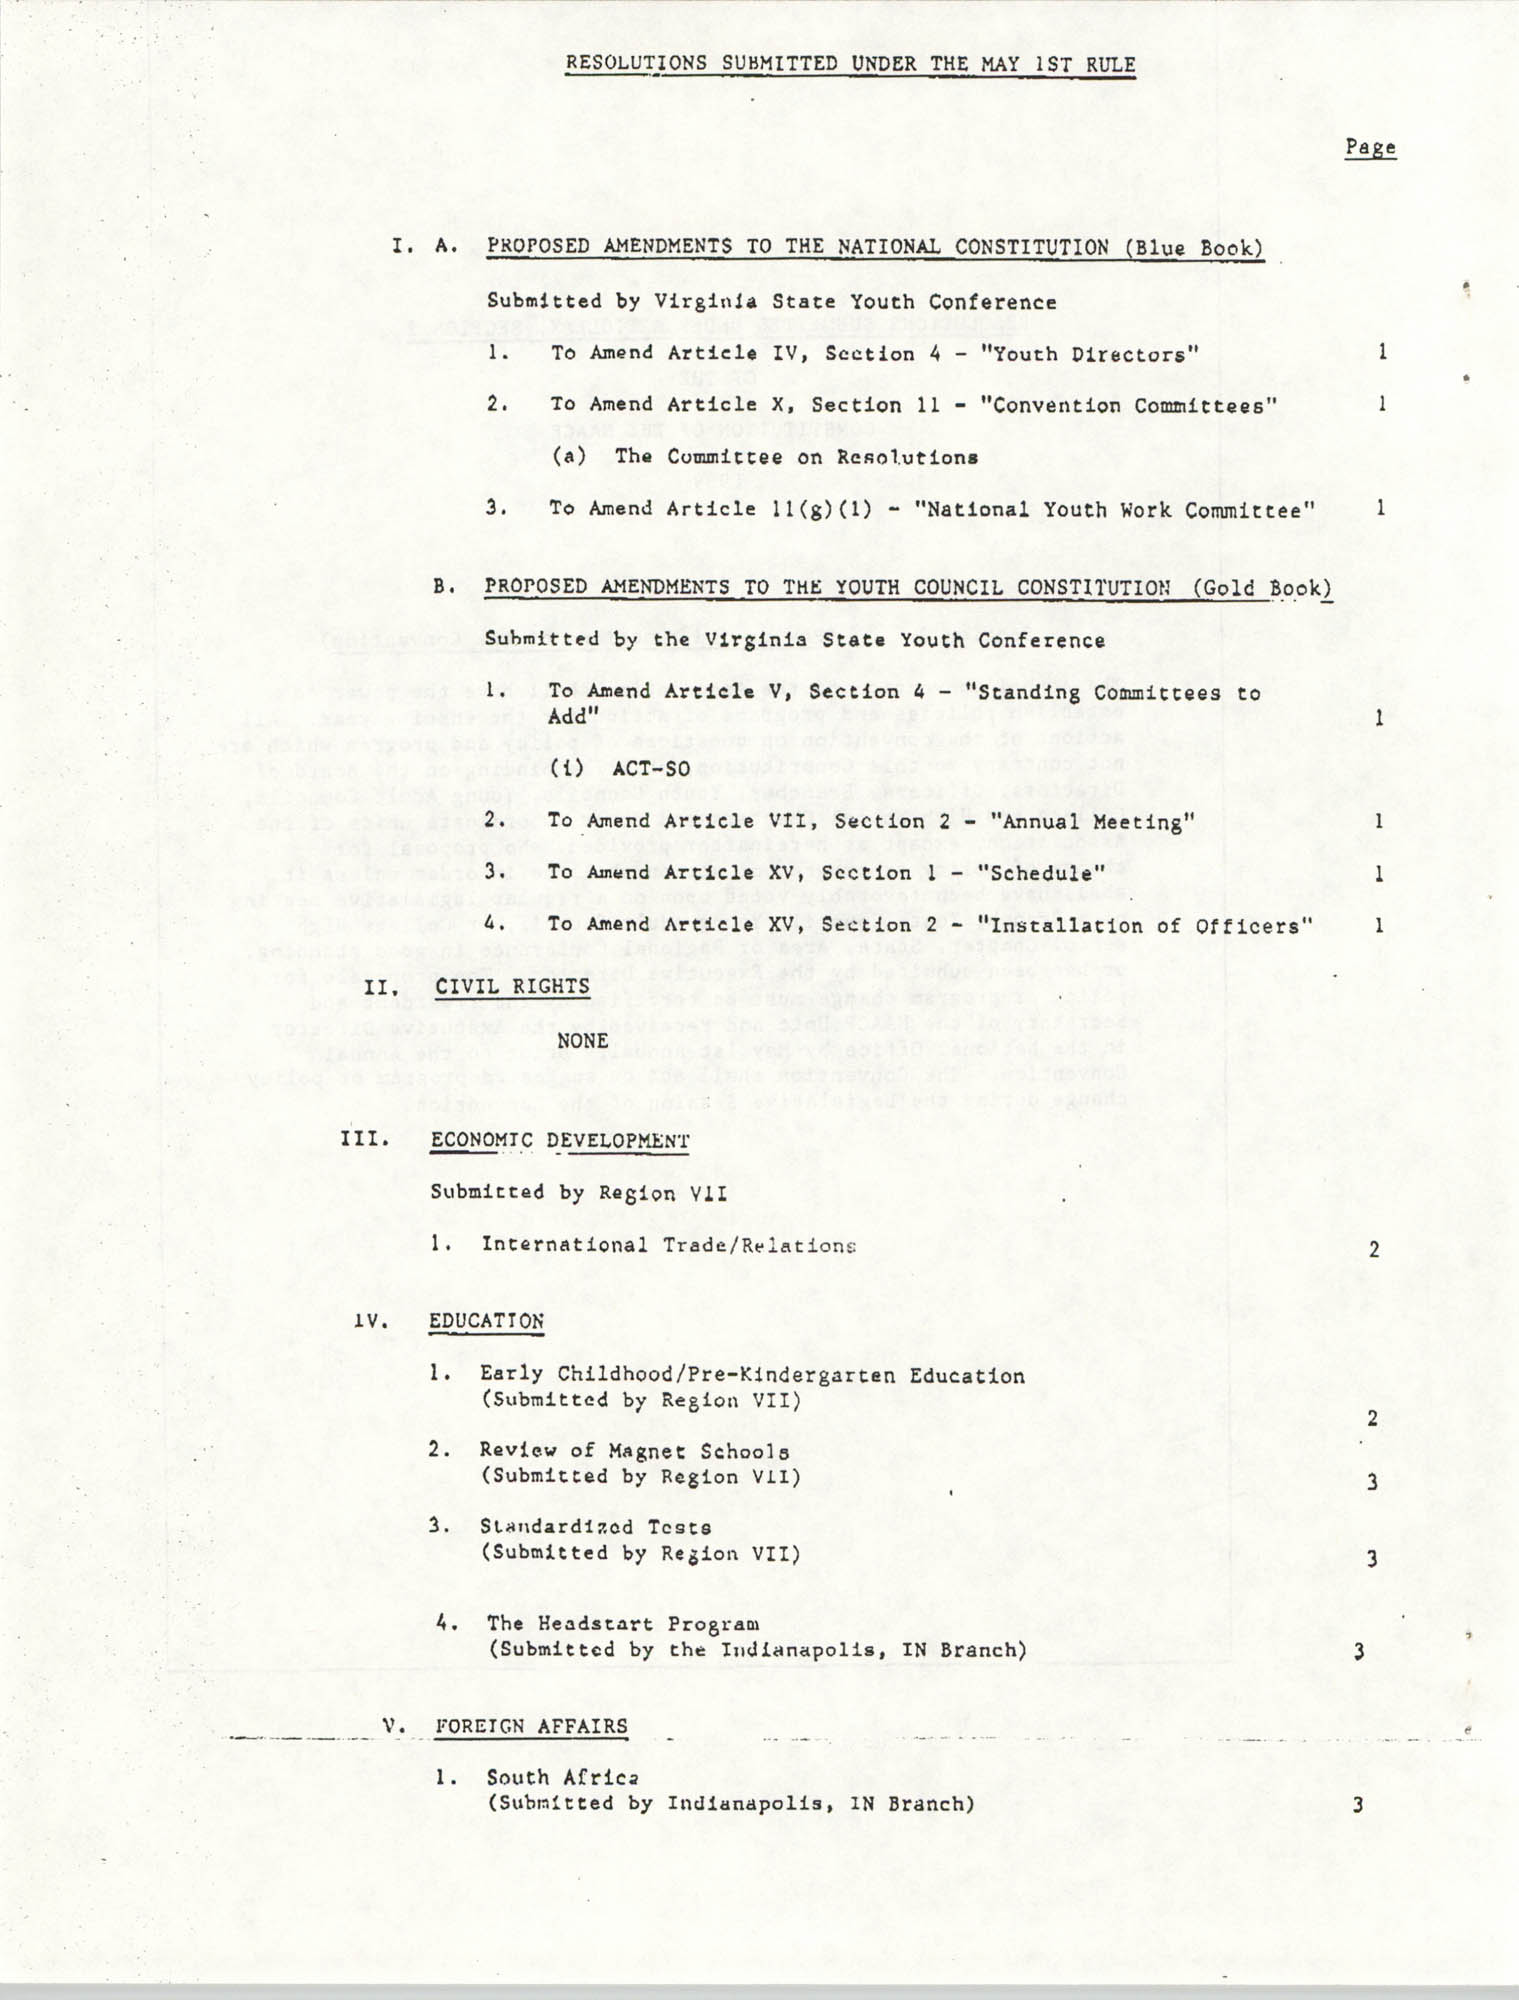 Resolutions Submitted Under Article X, Section 2 of the Constitution of the NAACP, Table of Contents Page 1